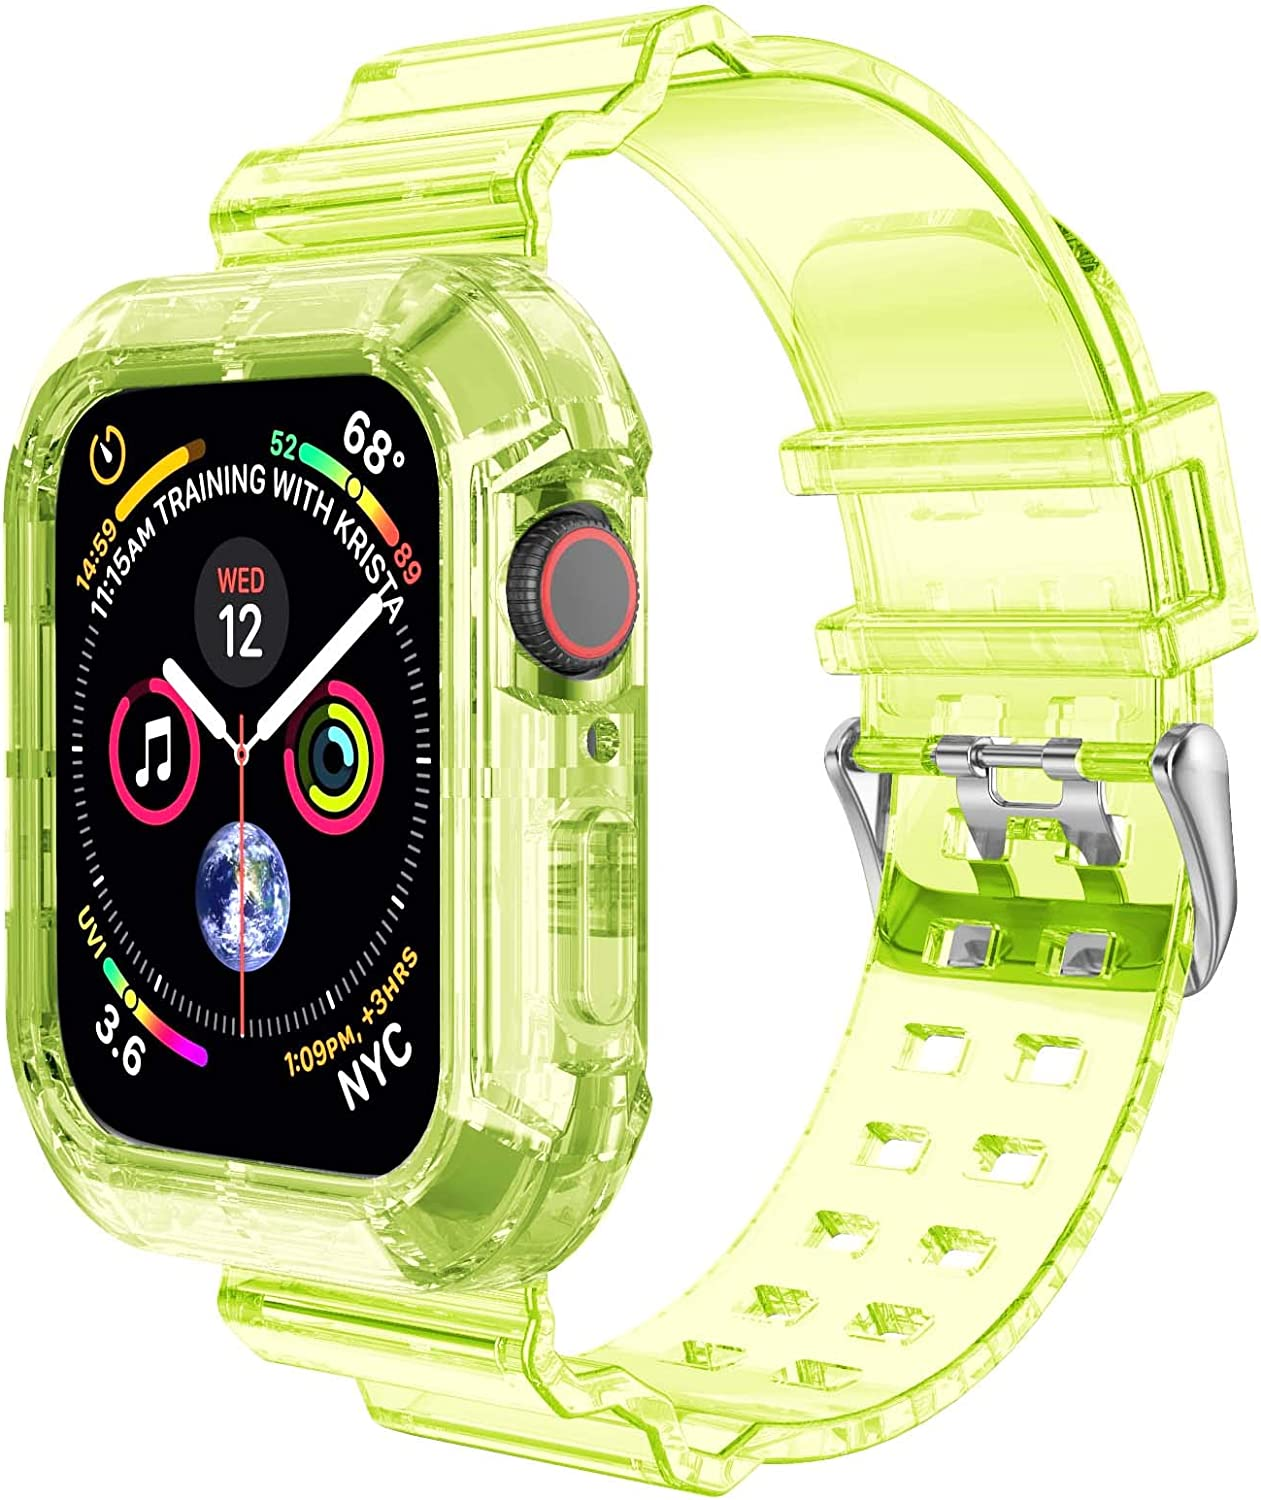 Clear Watch Band for Apple Watch 42mm 44mm,Transparent Clear Soft Silicone Sports iWatch Band Strap for Apple Watch Series 6/5/4/3/SE(Yellow-Green,44mm)